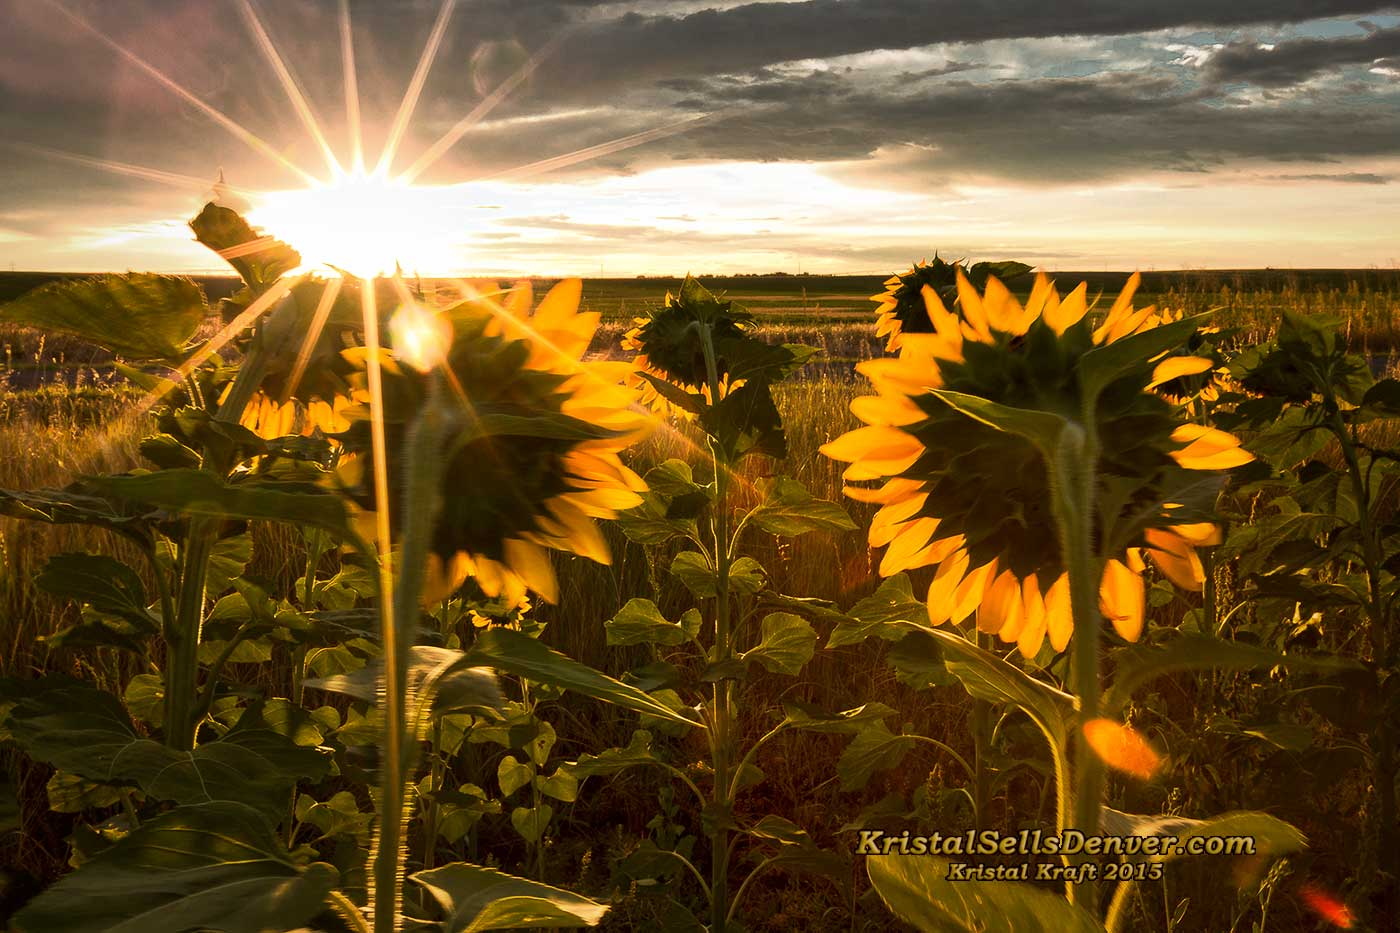 sunflowers gleaming in the morning sun